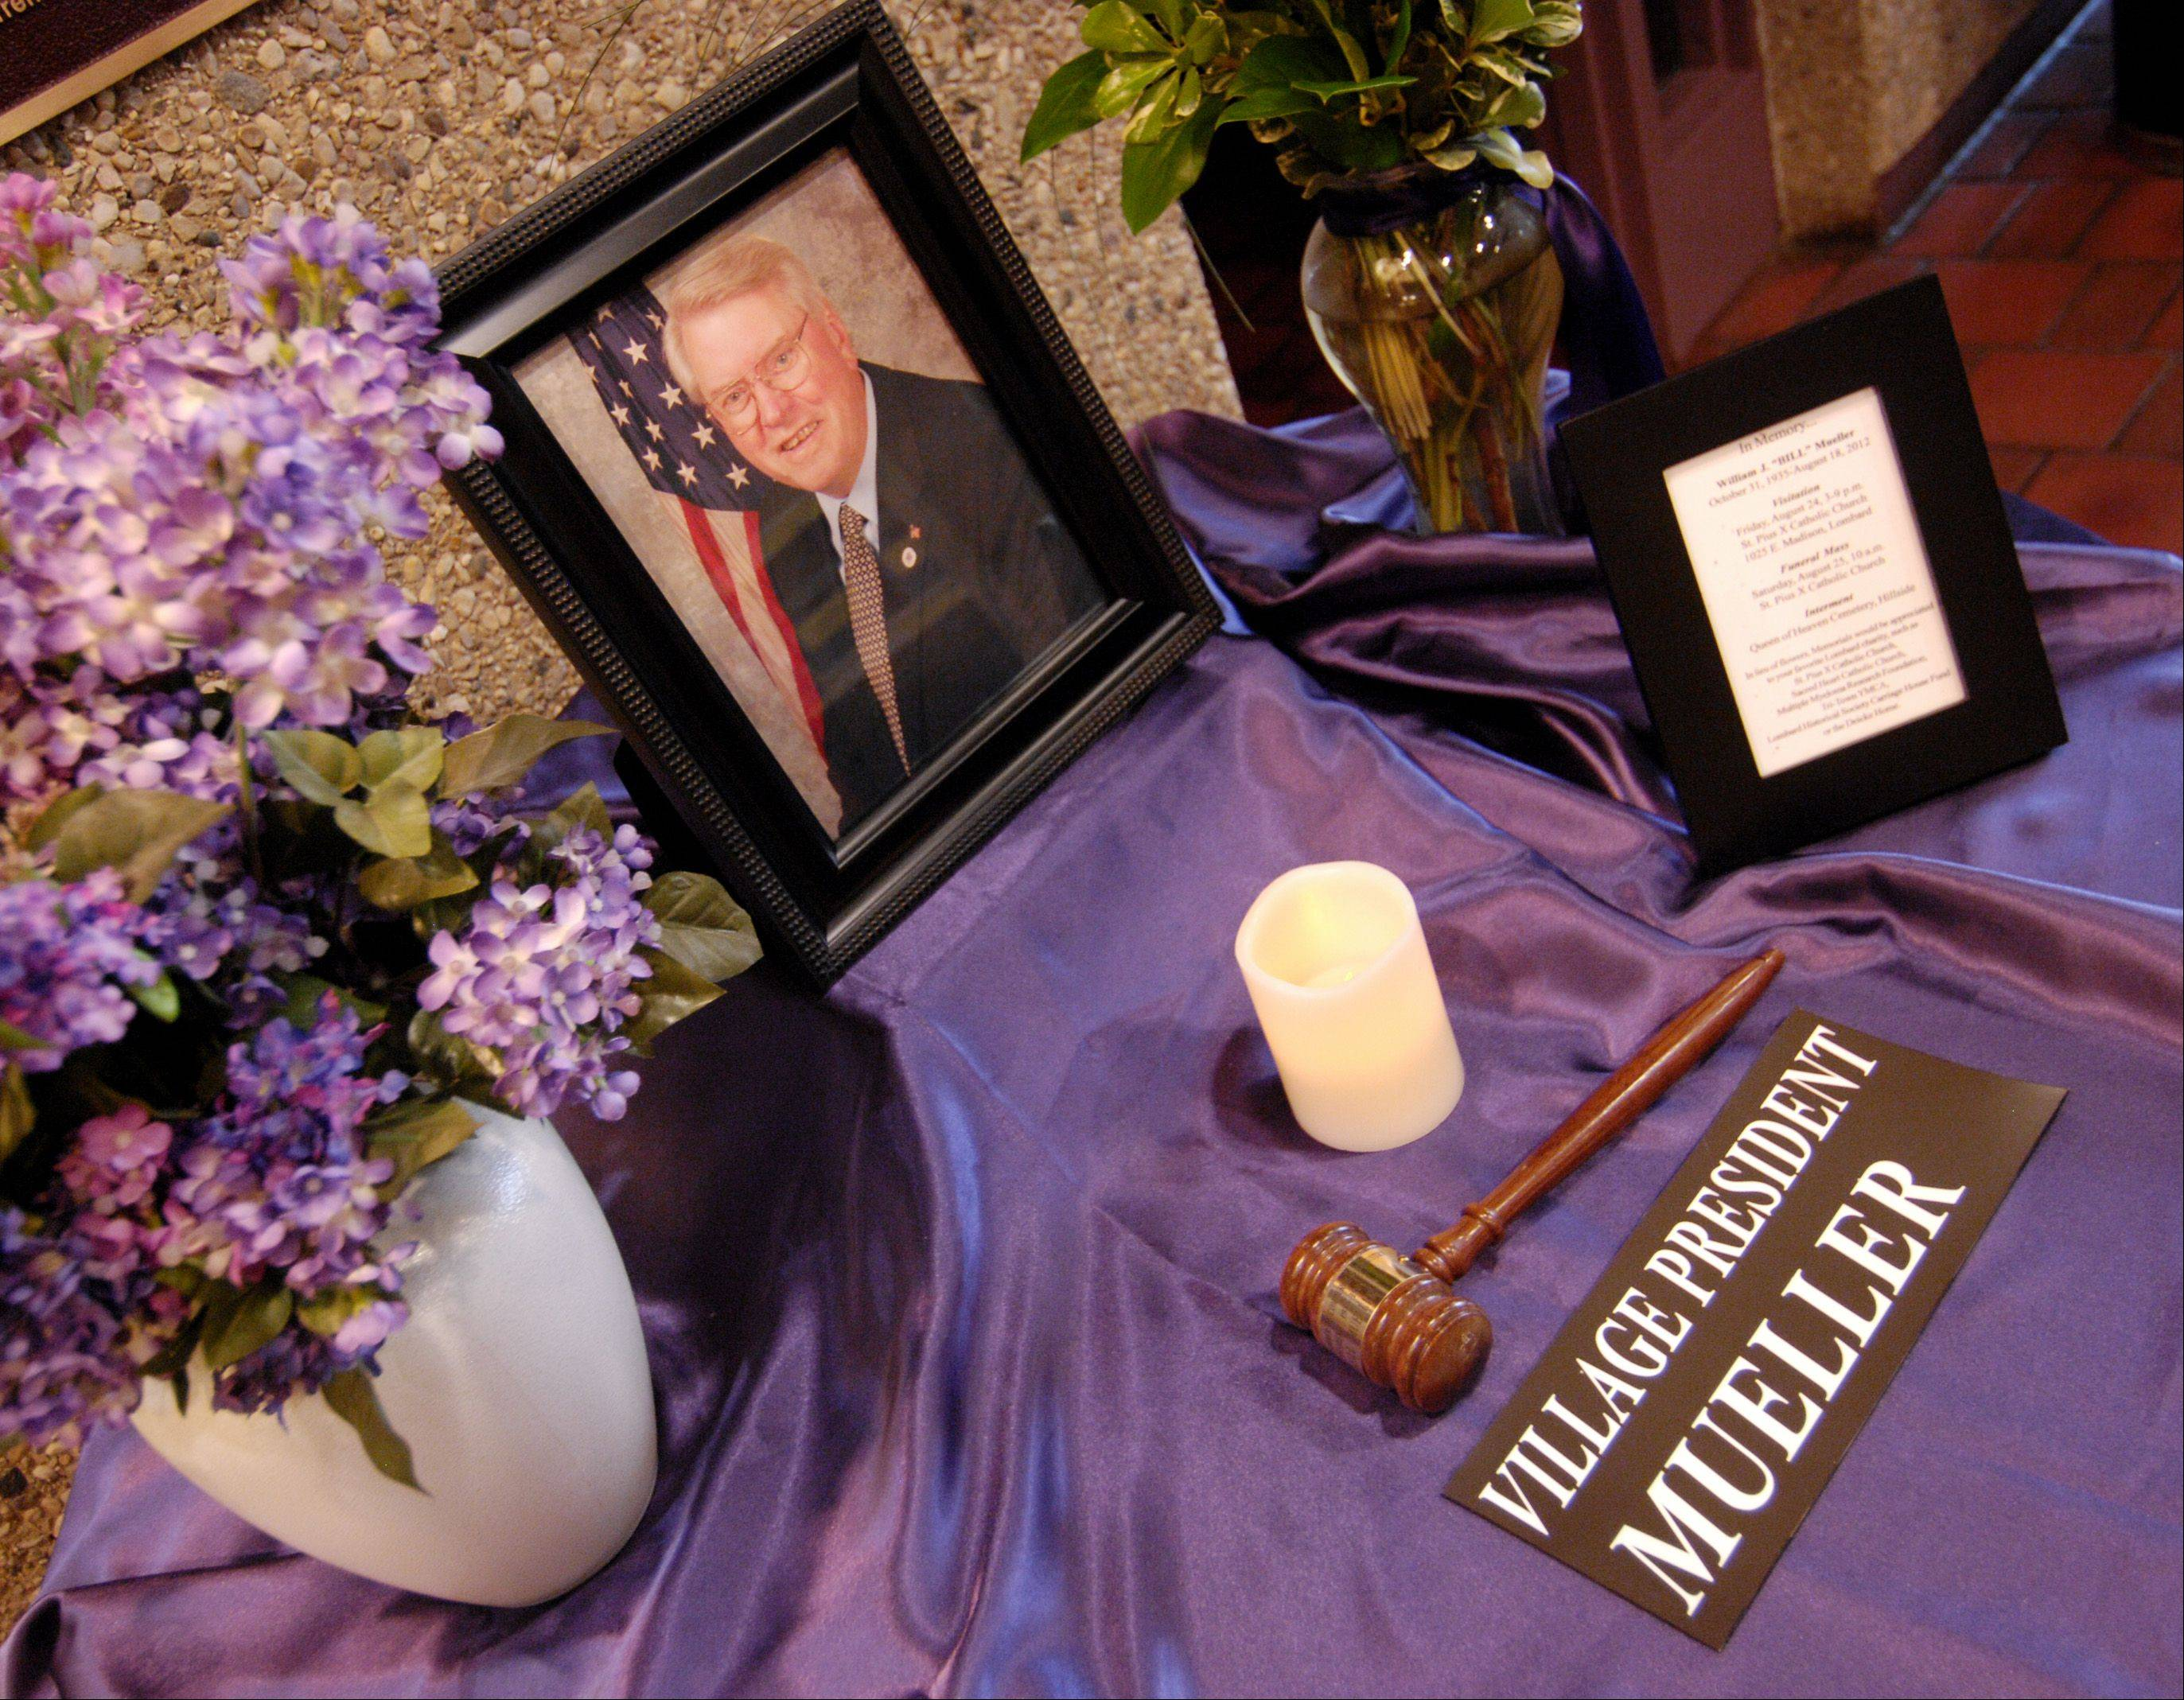 "A small group of Lombard residents is asking the community for help in raising $30,000 to build a permanent memorial to longtime Village President William J. ""Bill"" Mueller, who died last August. The memorial will be a Victorian-style gazebo among gardens on the property of the Victorian Cottage Museum at 23 W. Maple St."